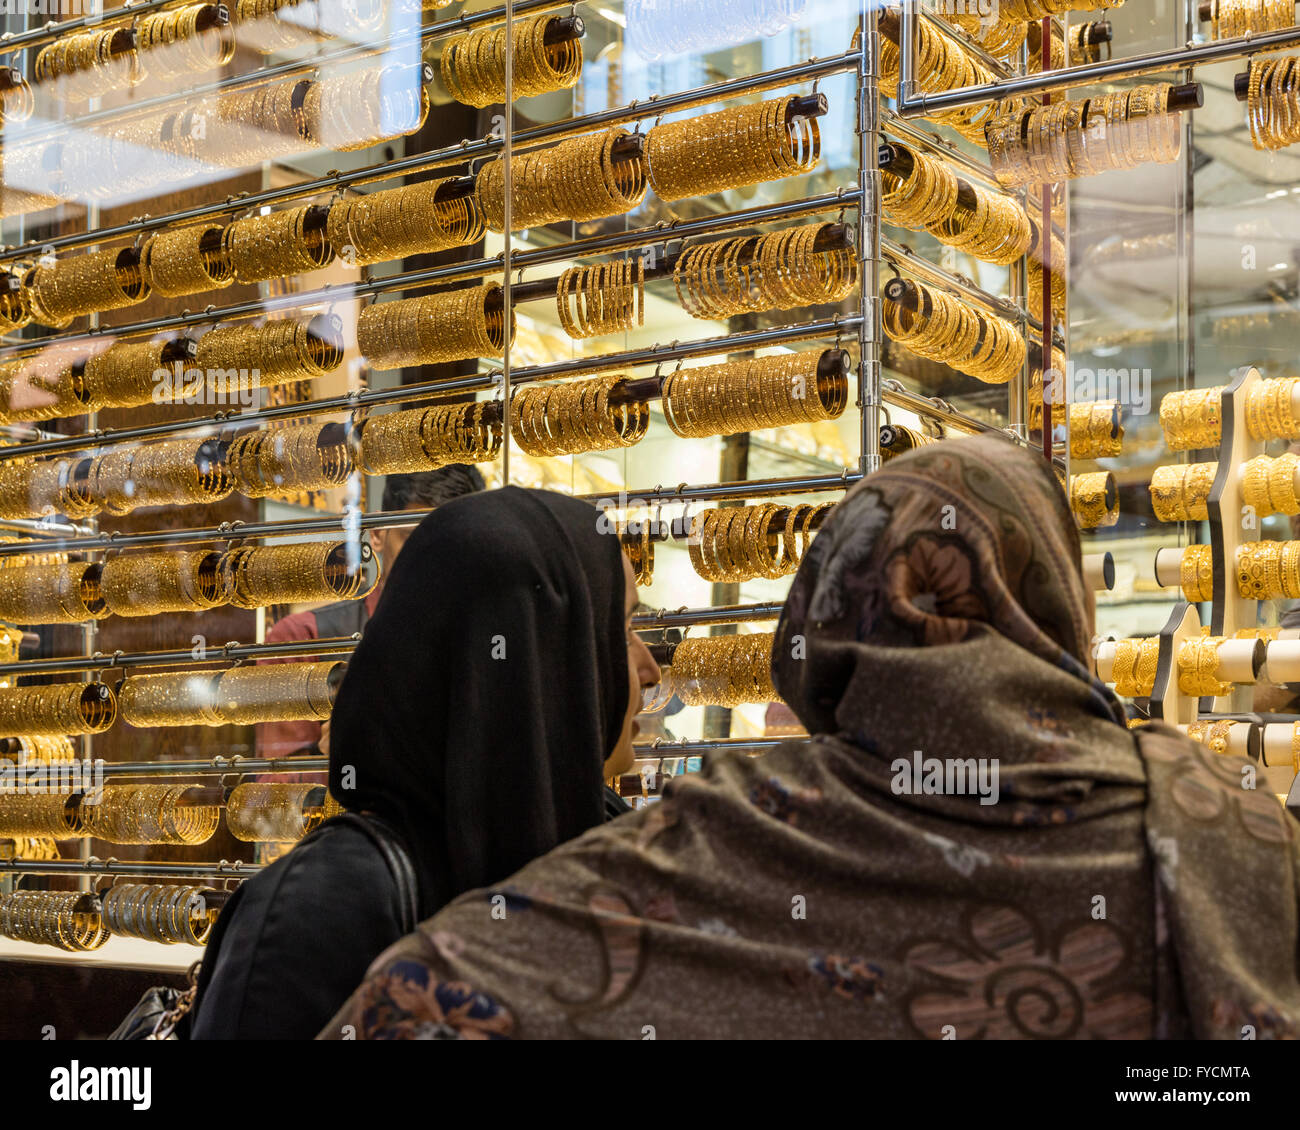 Two women in hijabs window shop in at jewelry shop in the Gold Souq, Al Ras, Dubai, UAE - Stock Image